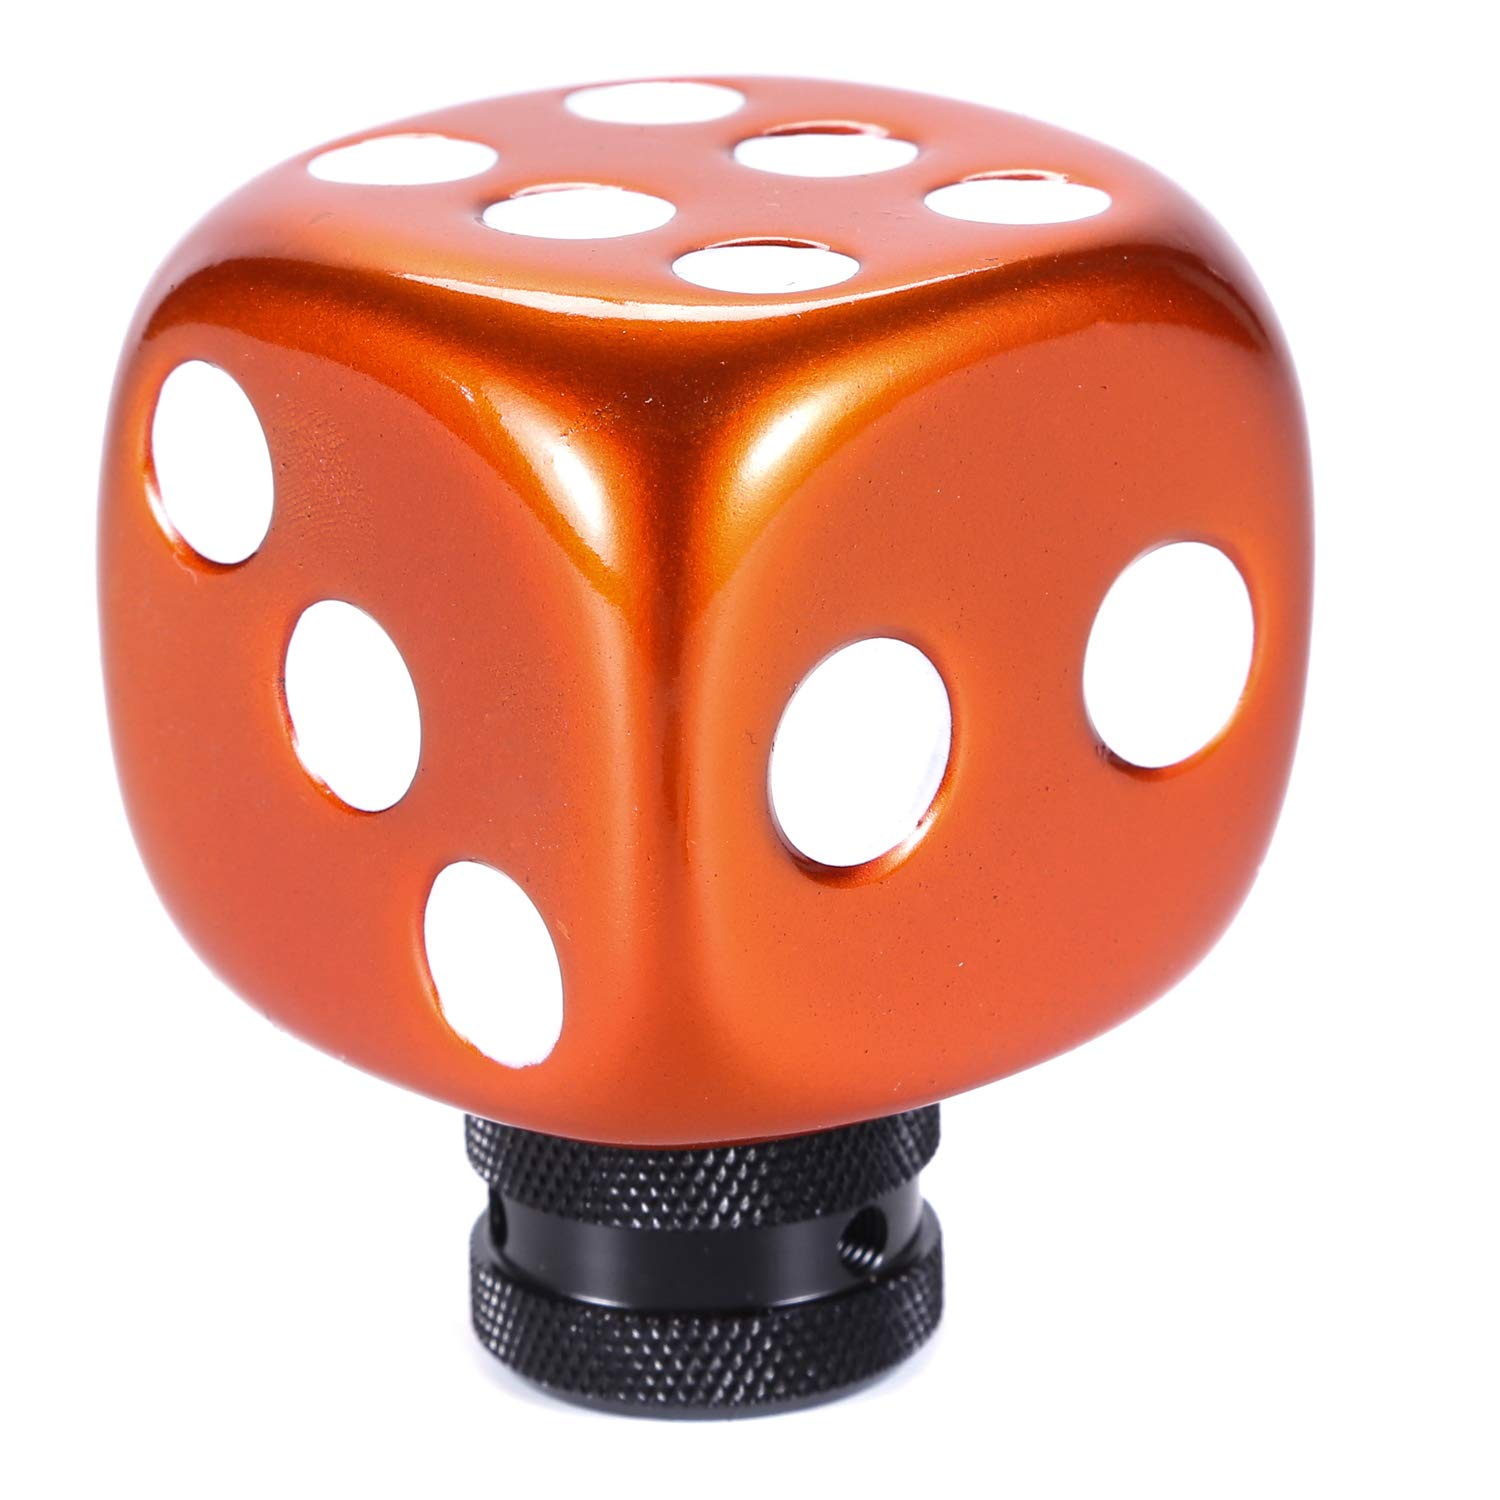 Multicolor+Red Aluminum Alloy Car Stick Shift Head for Most Manual Automatic Cars Bashineng Spring Gear Shifter Knob